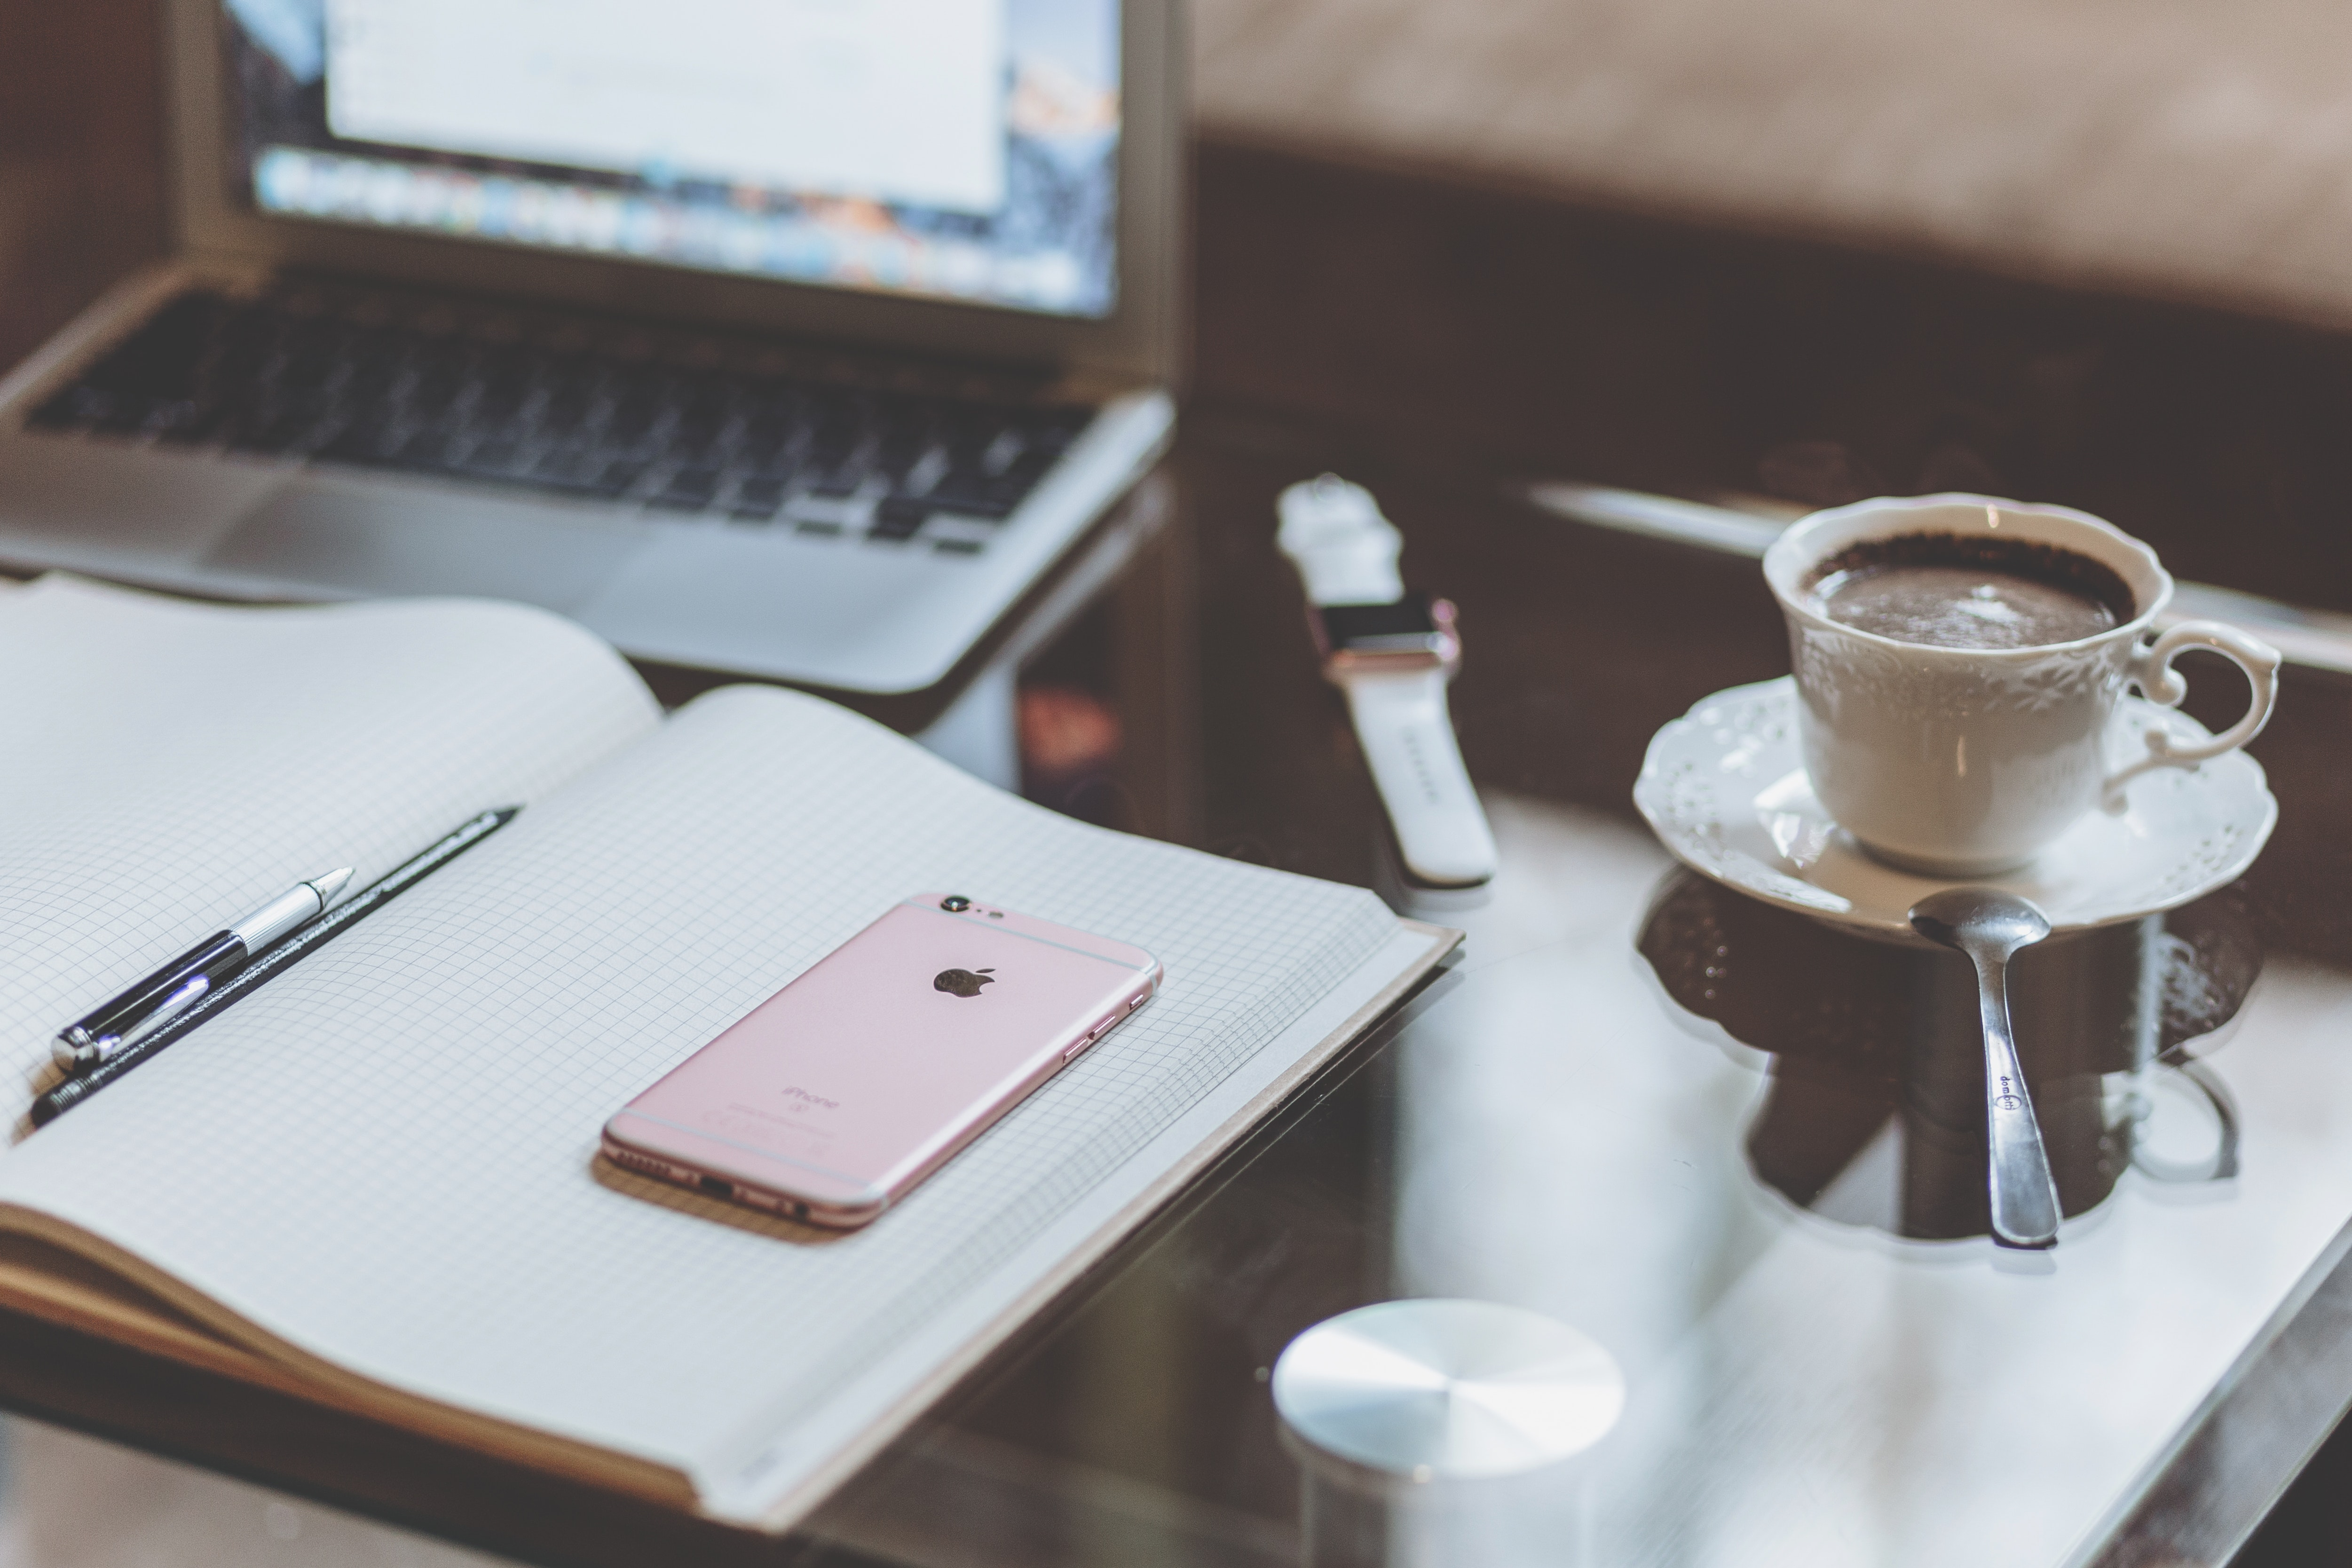 Rose Gold Iphone 6s on White Book Near Coffee, Apple, Coffee, Computer, Cup, HQ Photo